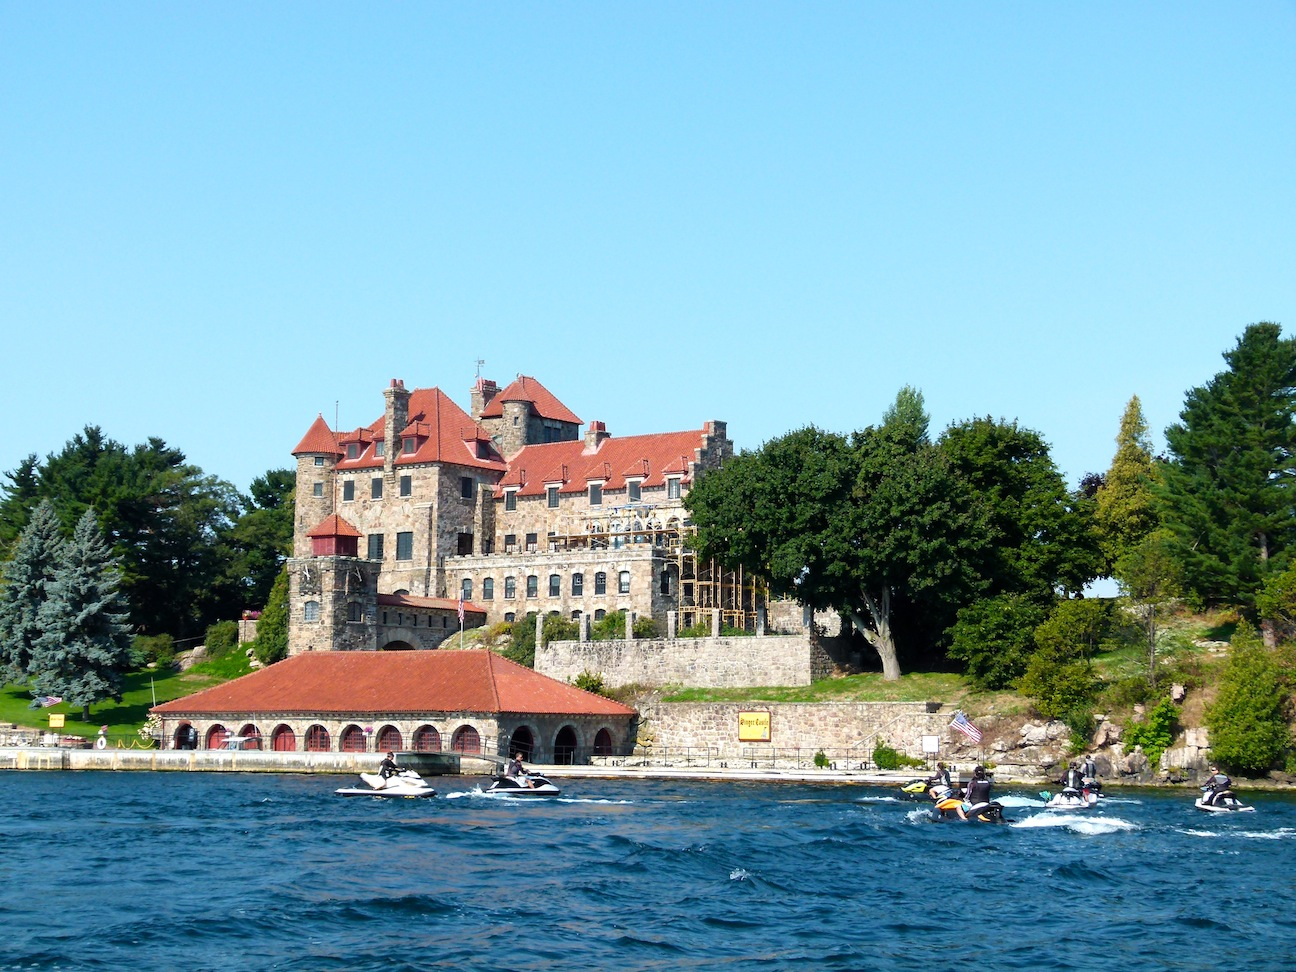 Photo of Boldt Castle from 1000 Islands Sea Doo Tour Video